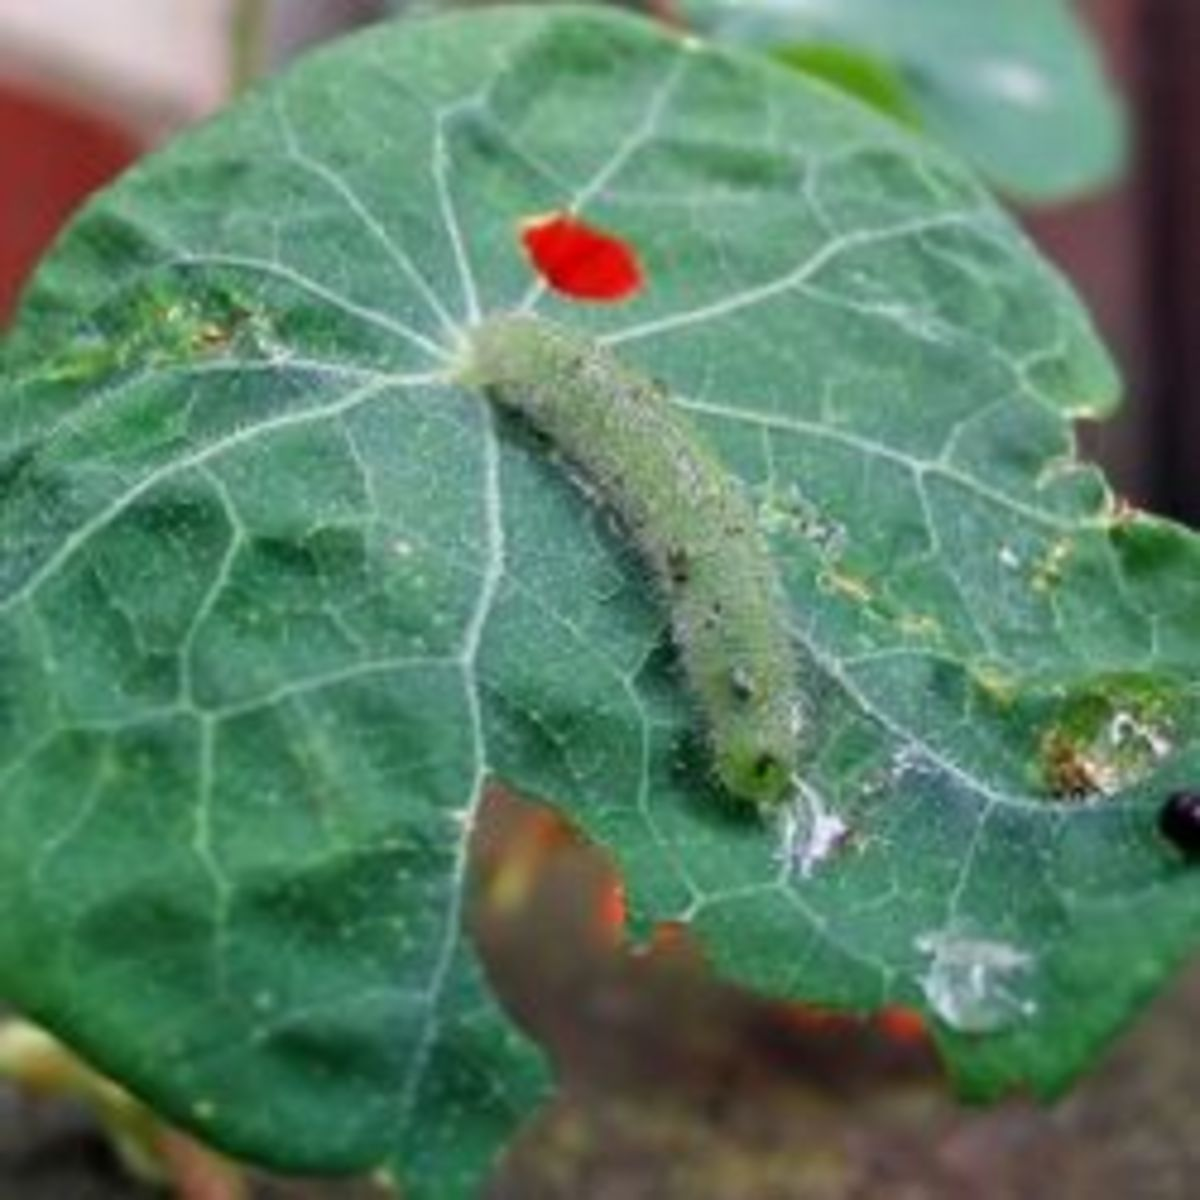 Biological control of the cabbage white butterfly, Pieris rapae